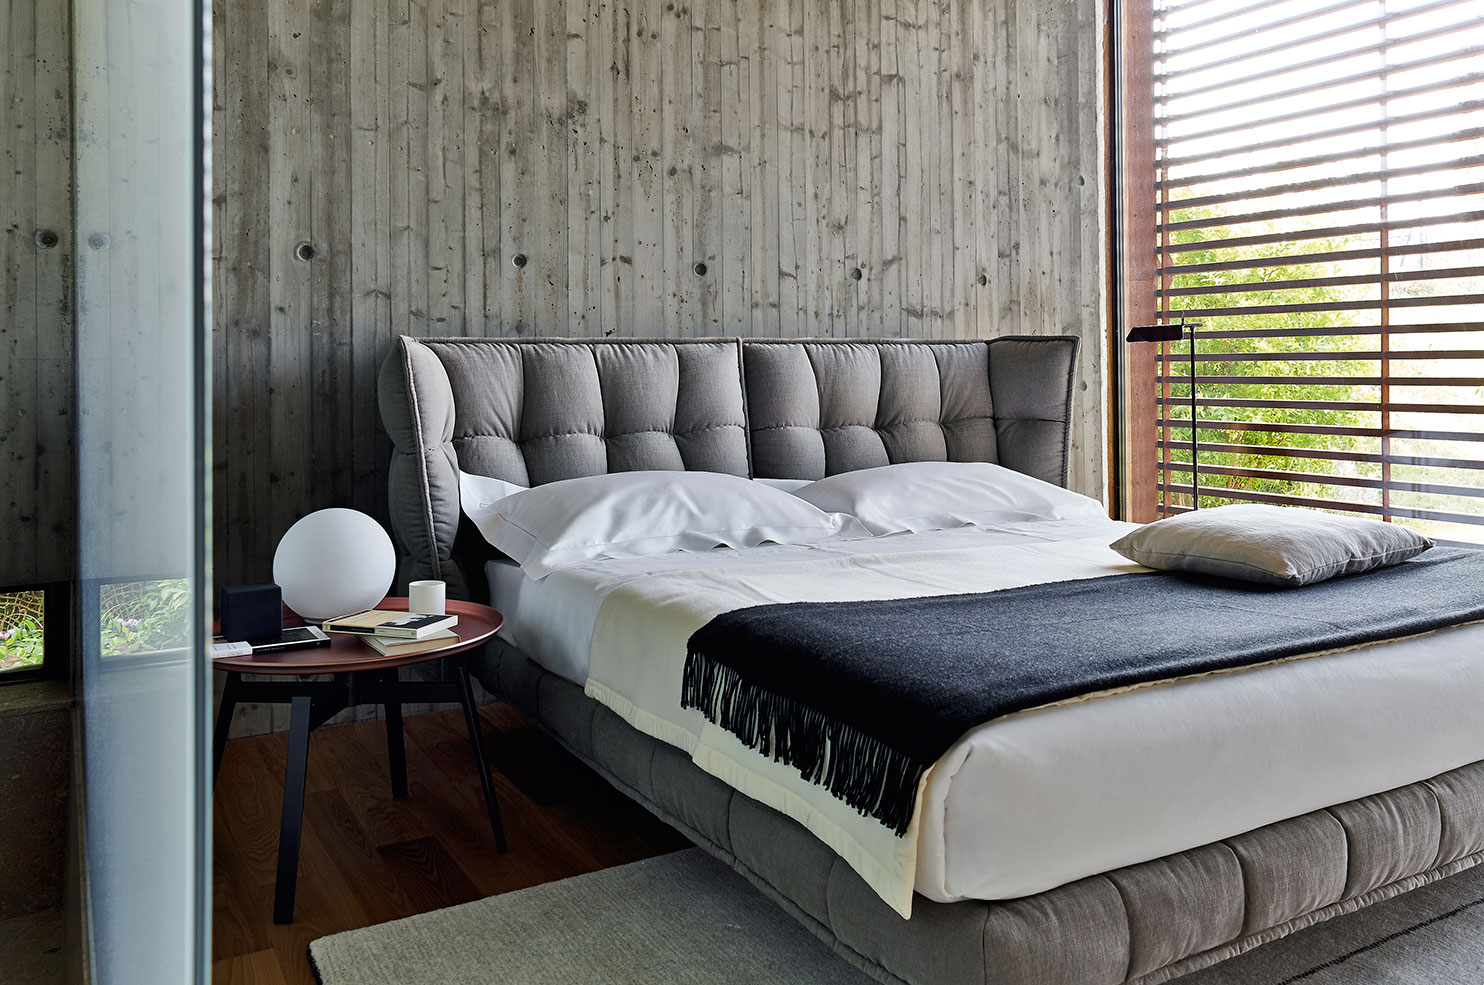 B&B Italia's Husk bed  is a soft touch against this concrete wall. Instead of a conventional bedside table, beside the bed is the  Husk side table .